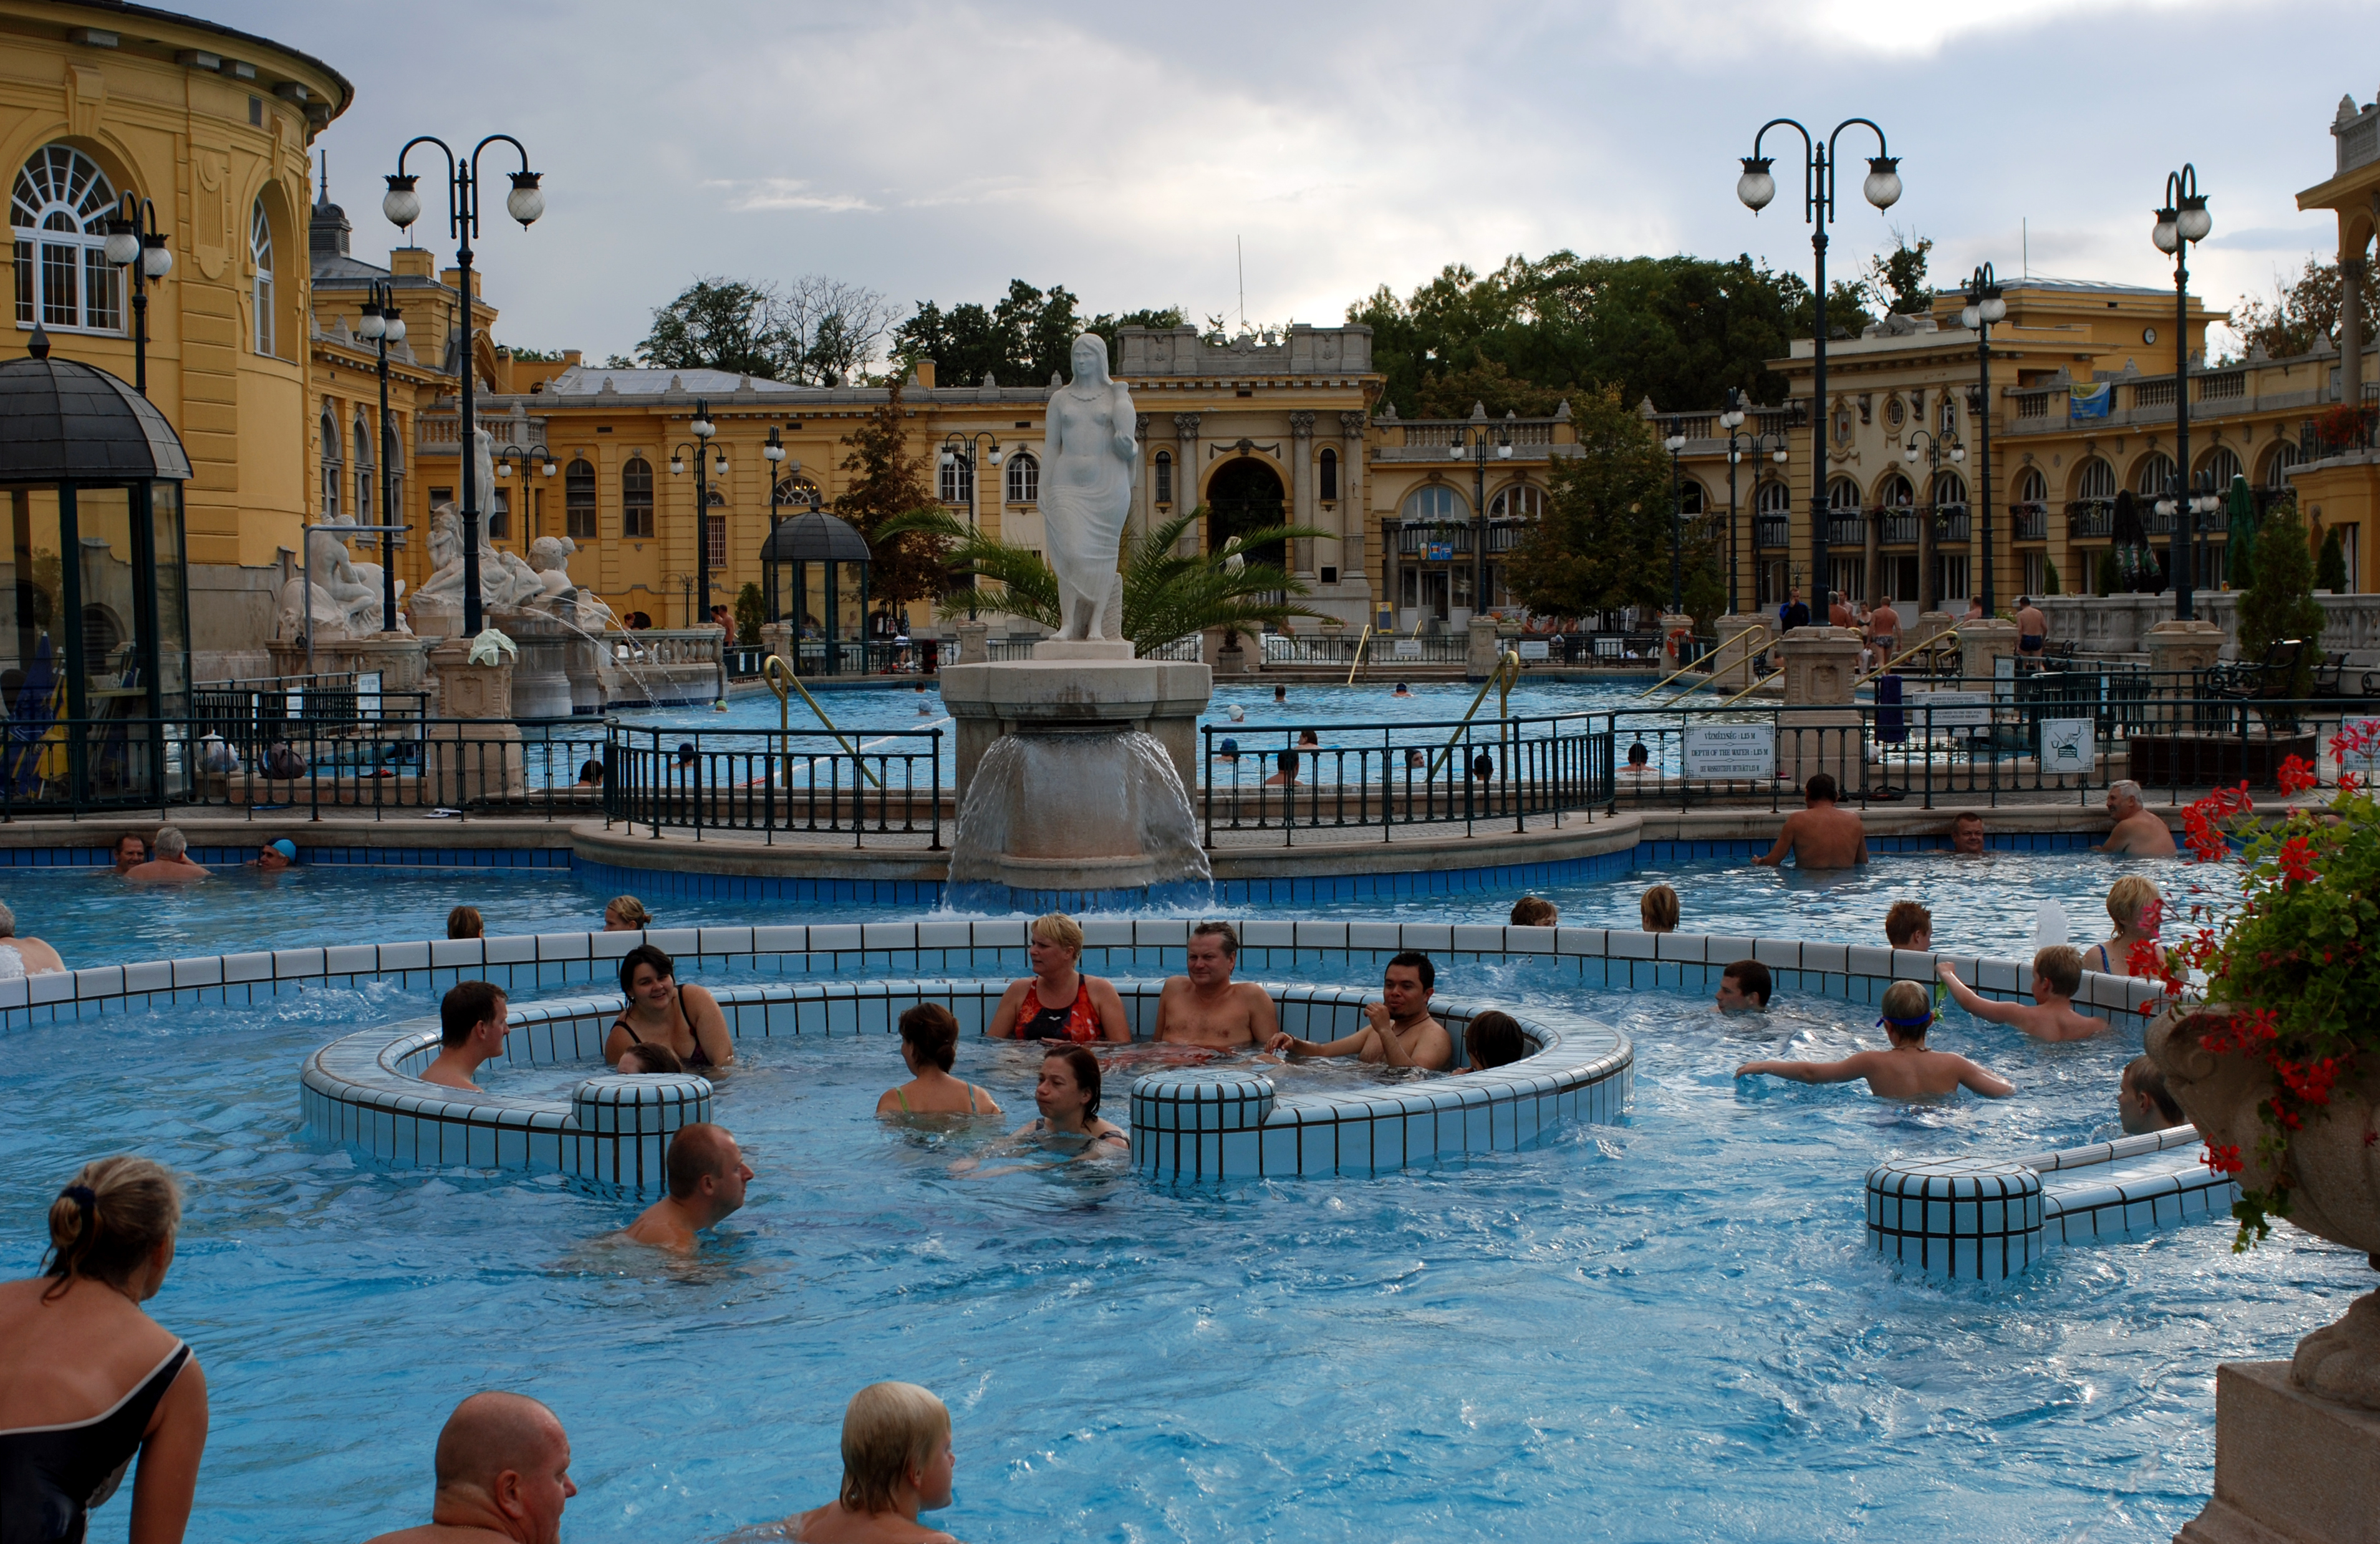 Soubor sz chenyi gy gyf rd thermal spa in budapest 011 jpg wikipedie for A list salon budapest